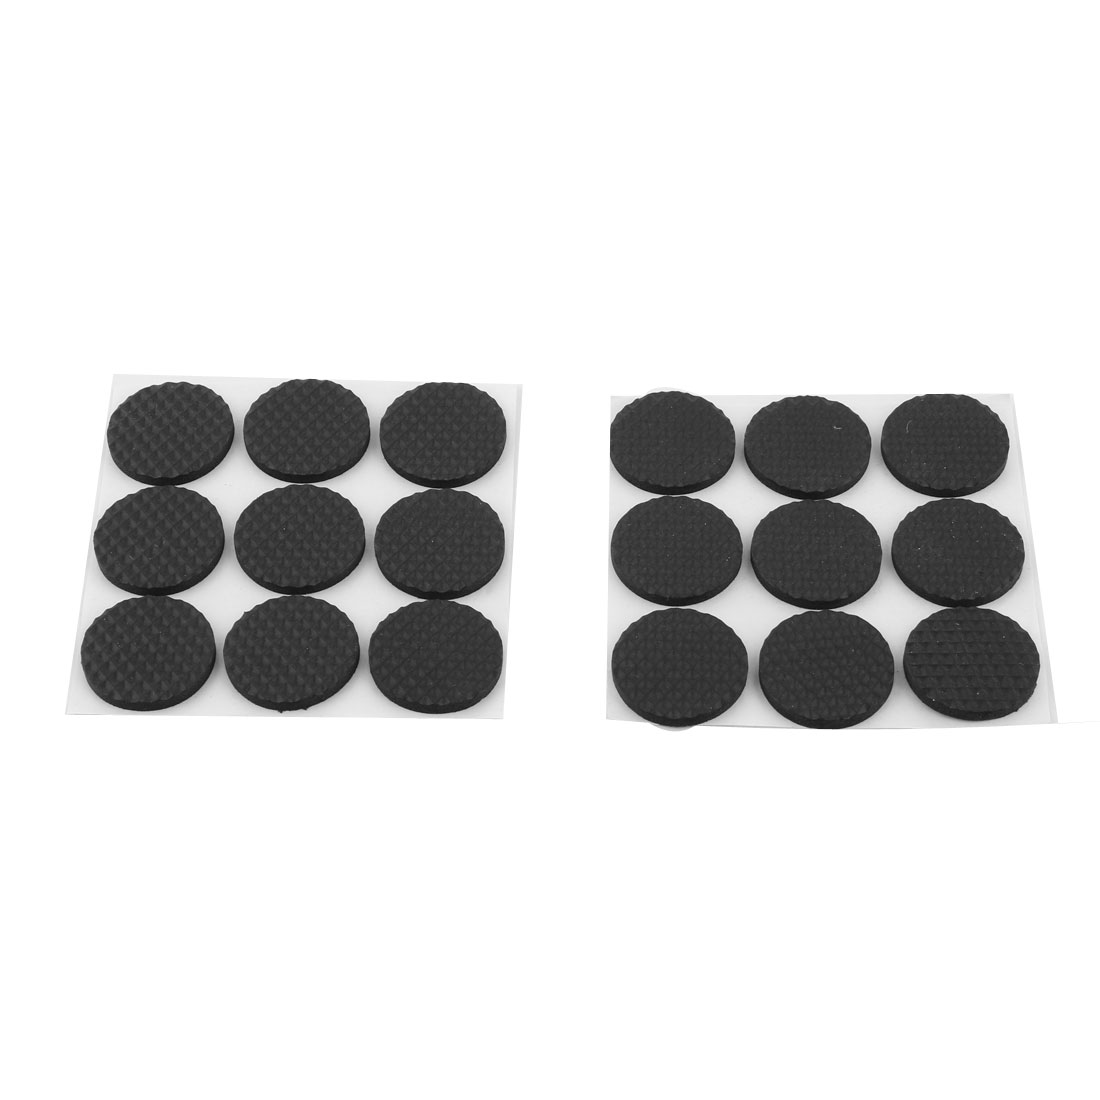 Family Living Room Furniture Table Chair Protection Cushion Pads Black 18pcs